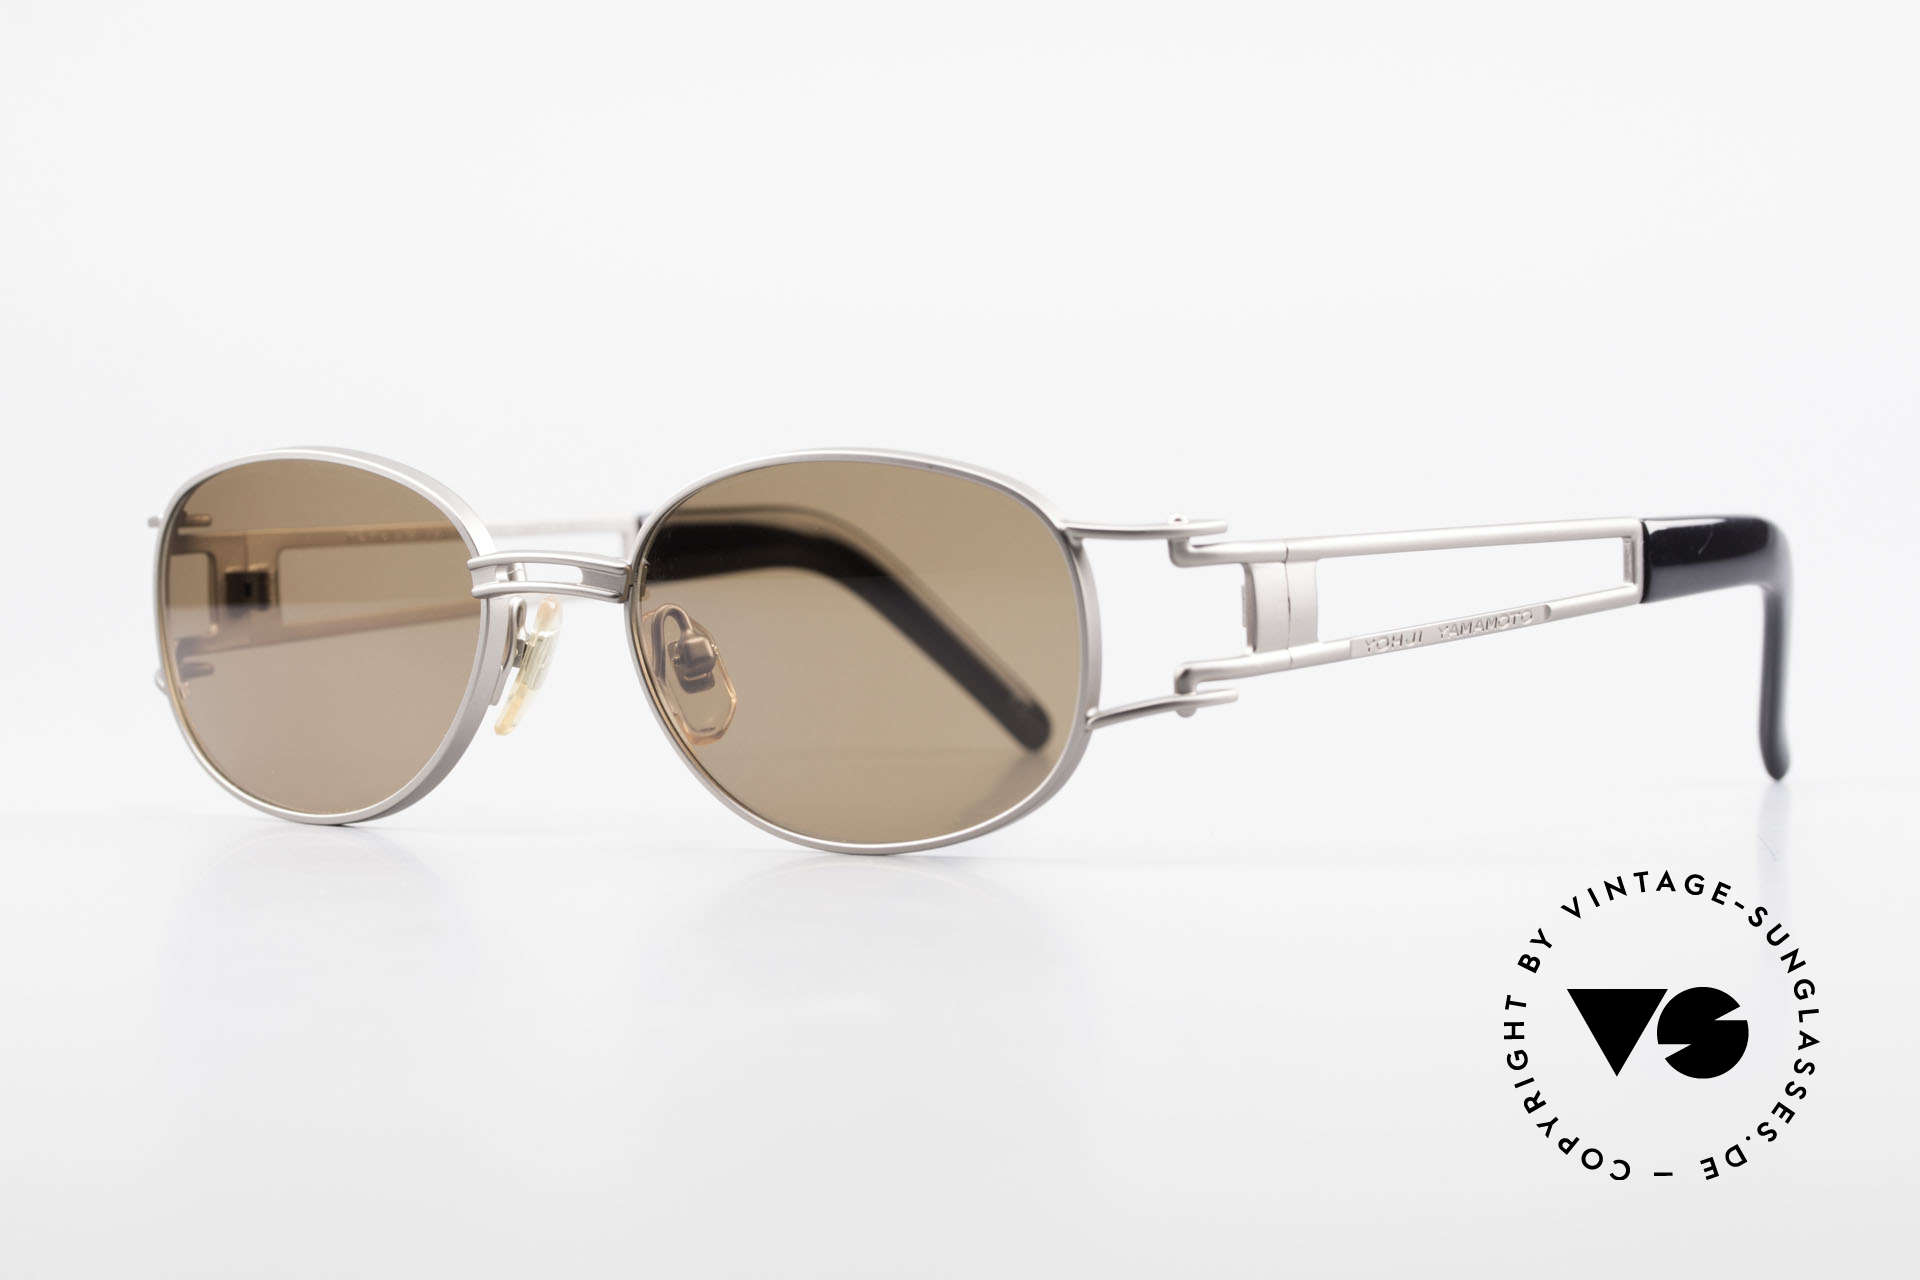 Yohji Yamamoto 52-6106 Designer Shades Vintage Oval, outstanding materials and craftsmanship; made in Japan, Made for Men and Women